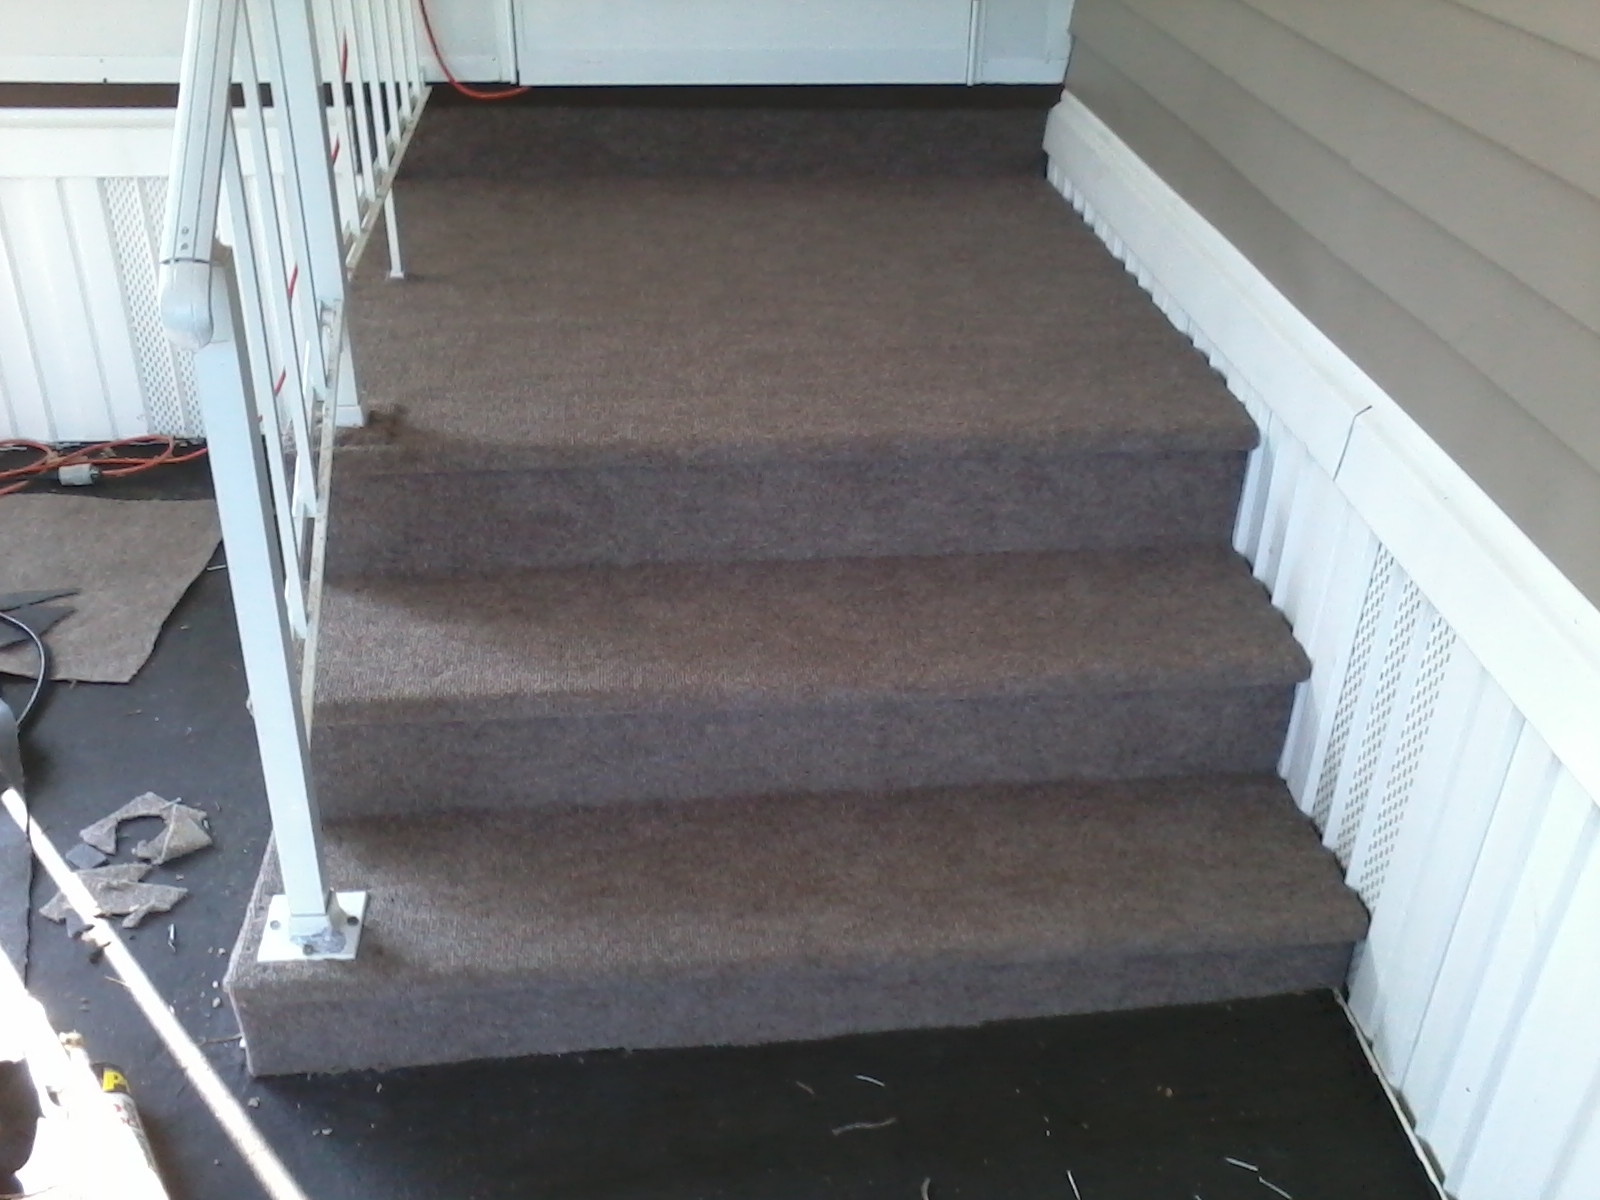 A 1 Interior Systems Deck Resurfacing Refinishing | Outdoor Carpet For Steps | Front Entrance | Marine | Navy Pattern | Rubber | Diy